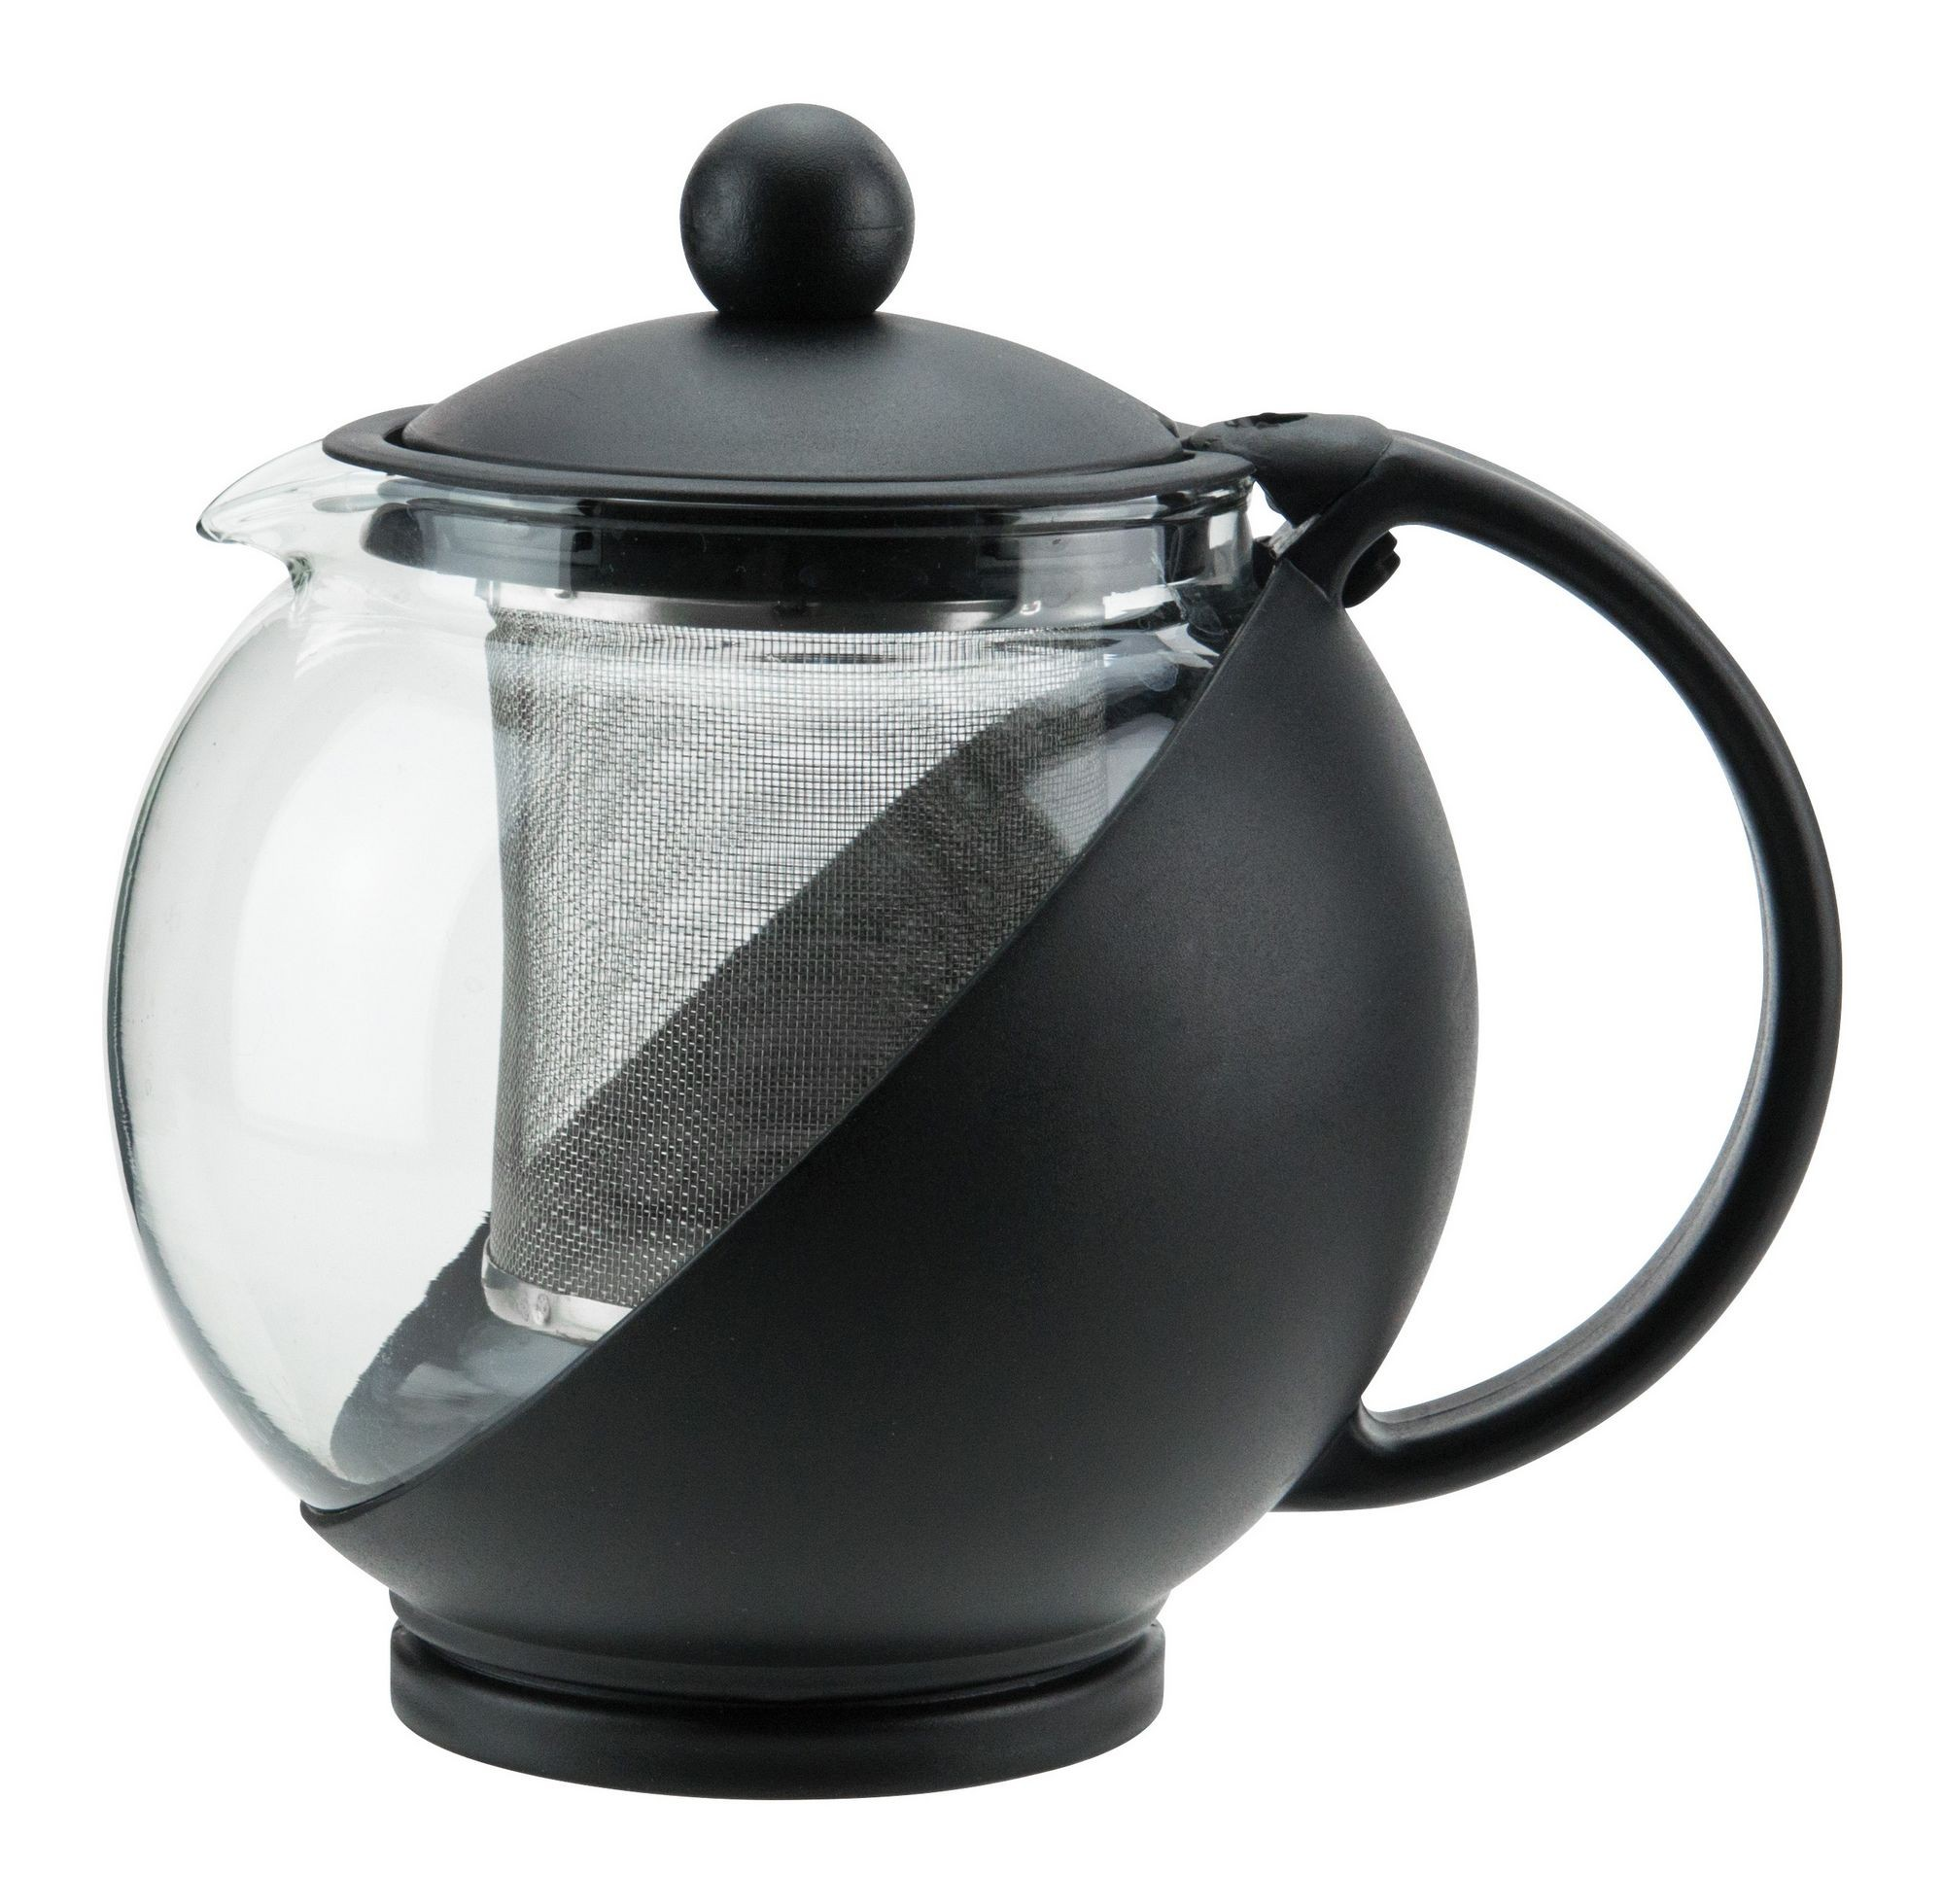 Winco GTP-25 Glass Teapot 25 oz. with Infuser Basket